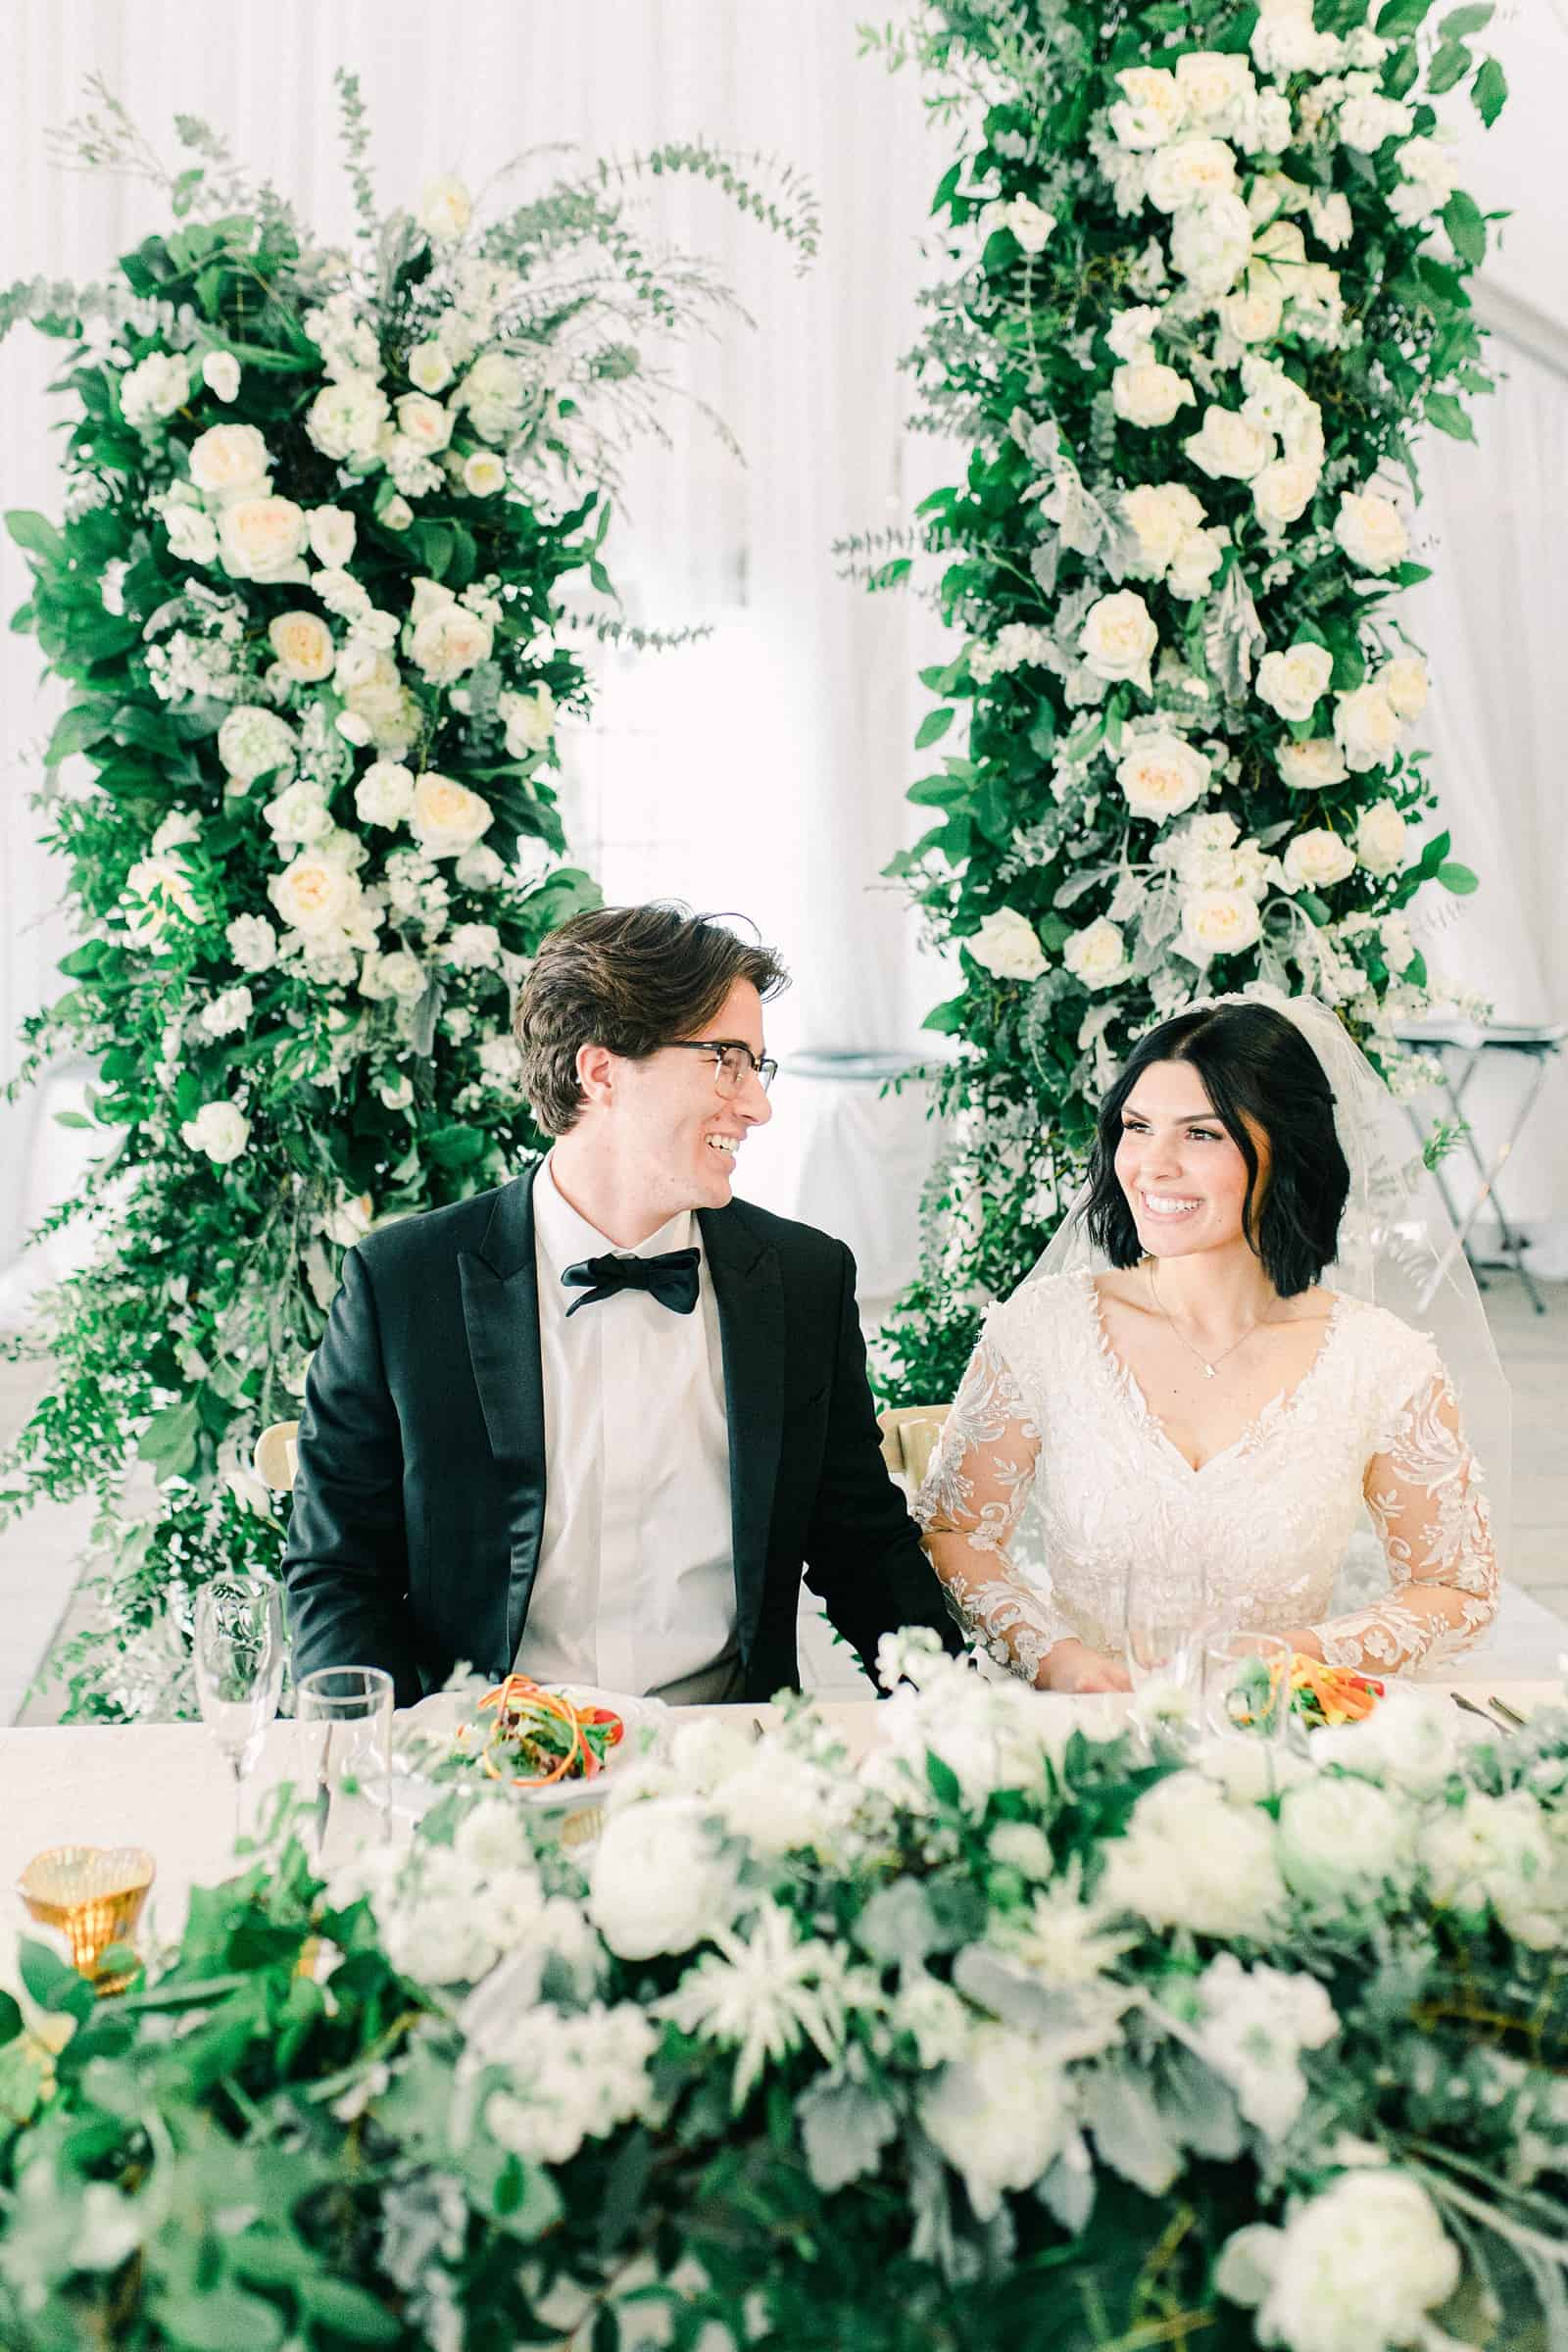 Luxury winter wedding at Willowbridge Estate in Boise, Idaho, bride and groom at sweetheart table with floral arch with white flowers and greenery backdrop